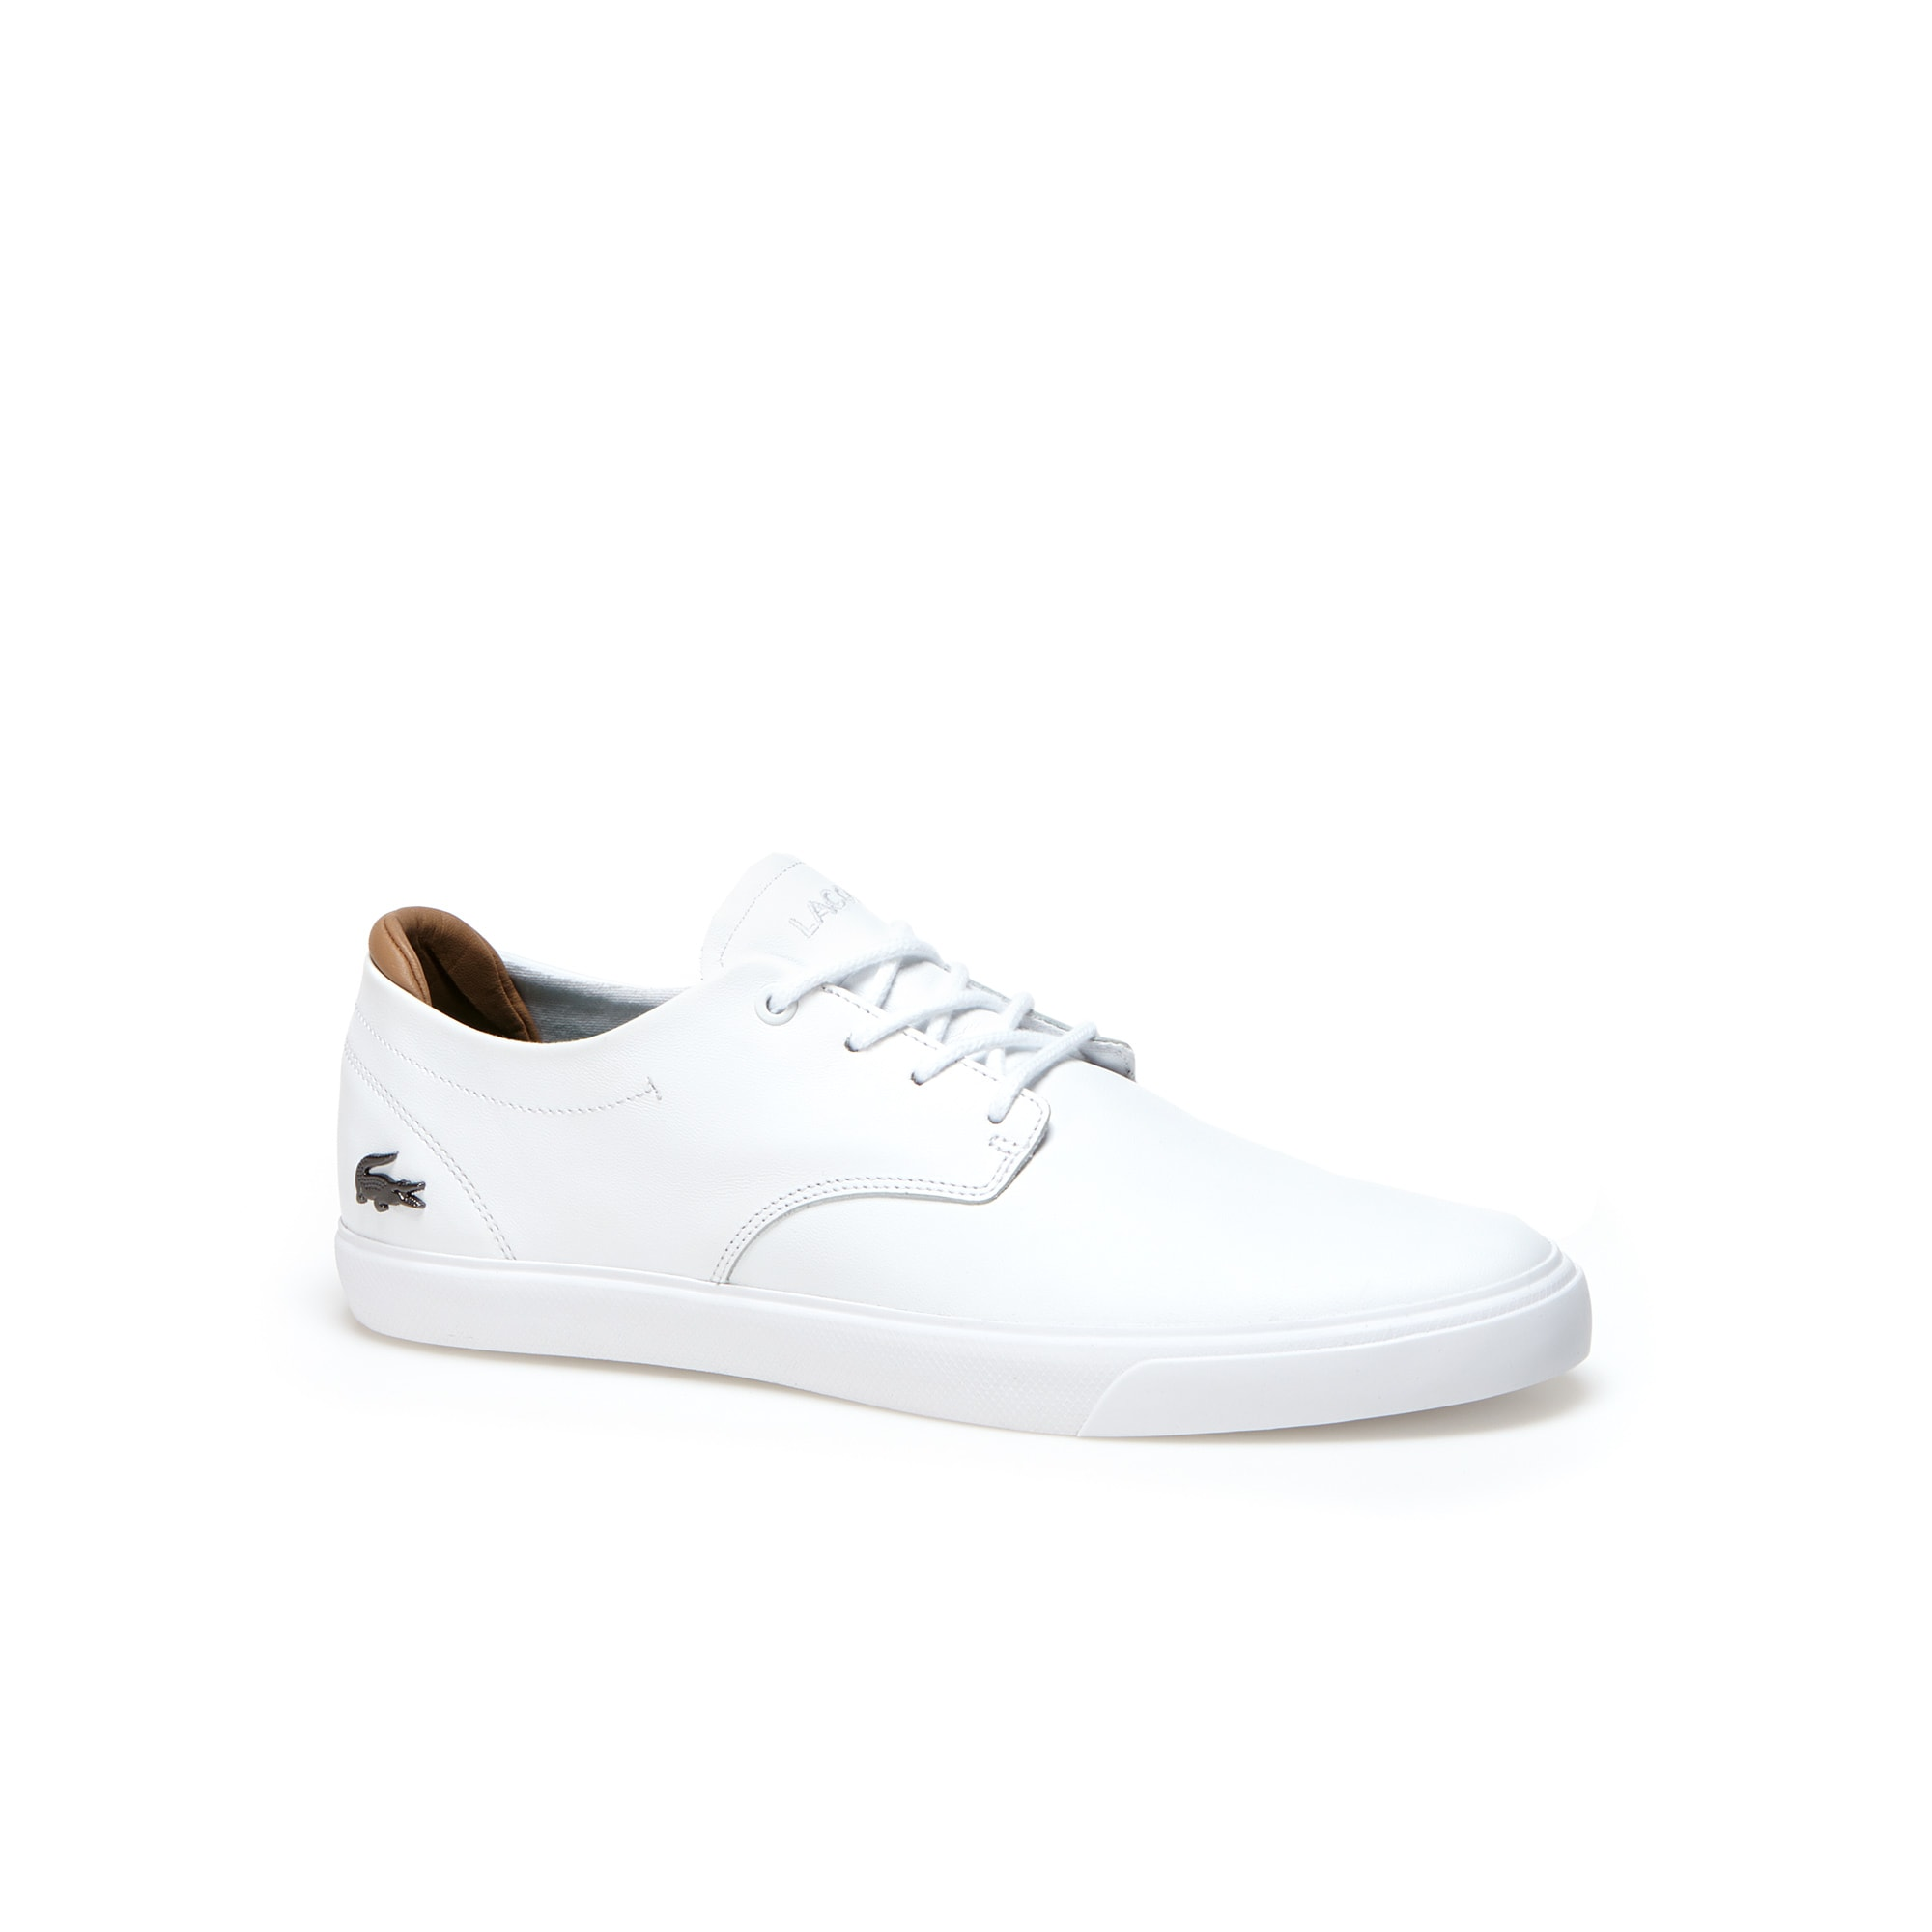 Men's Espere Nappa Leather Trainers